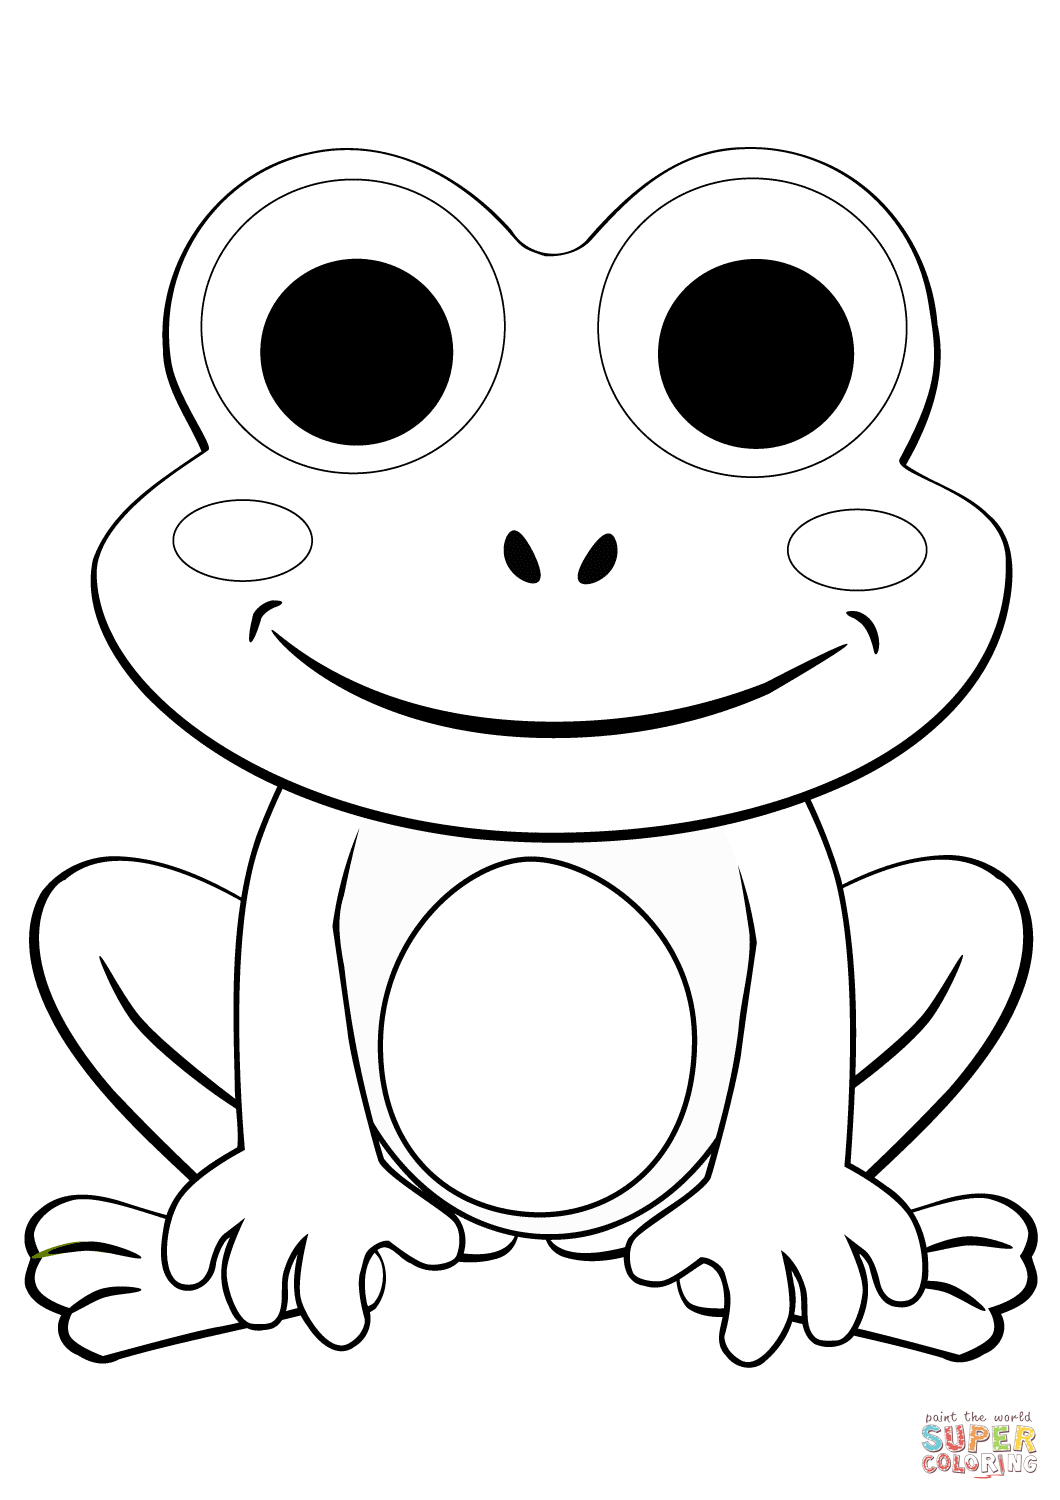 Cute Cartoons Coloring Pages Frog Coloring Pages Cartoon Coloring Pages Cute Coloring Pages